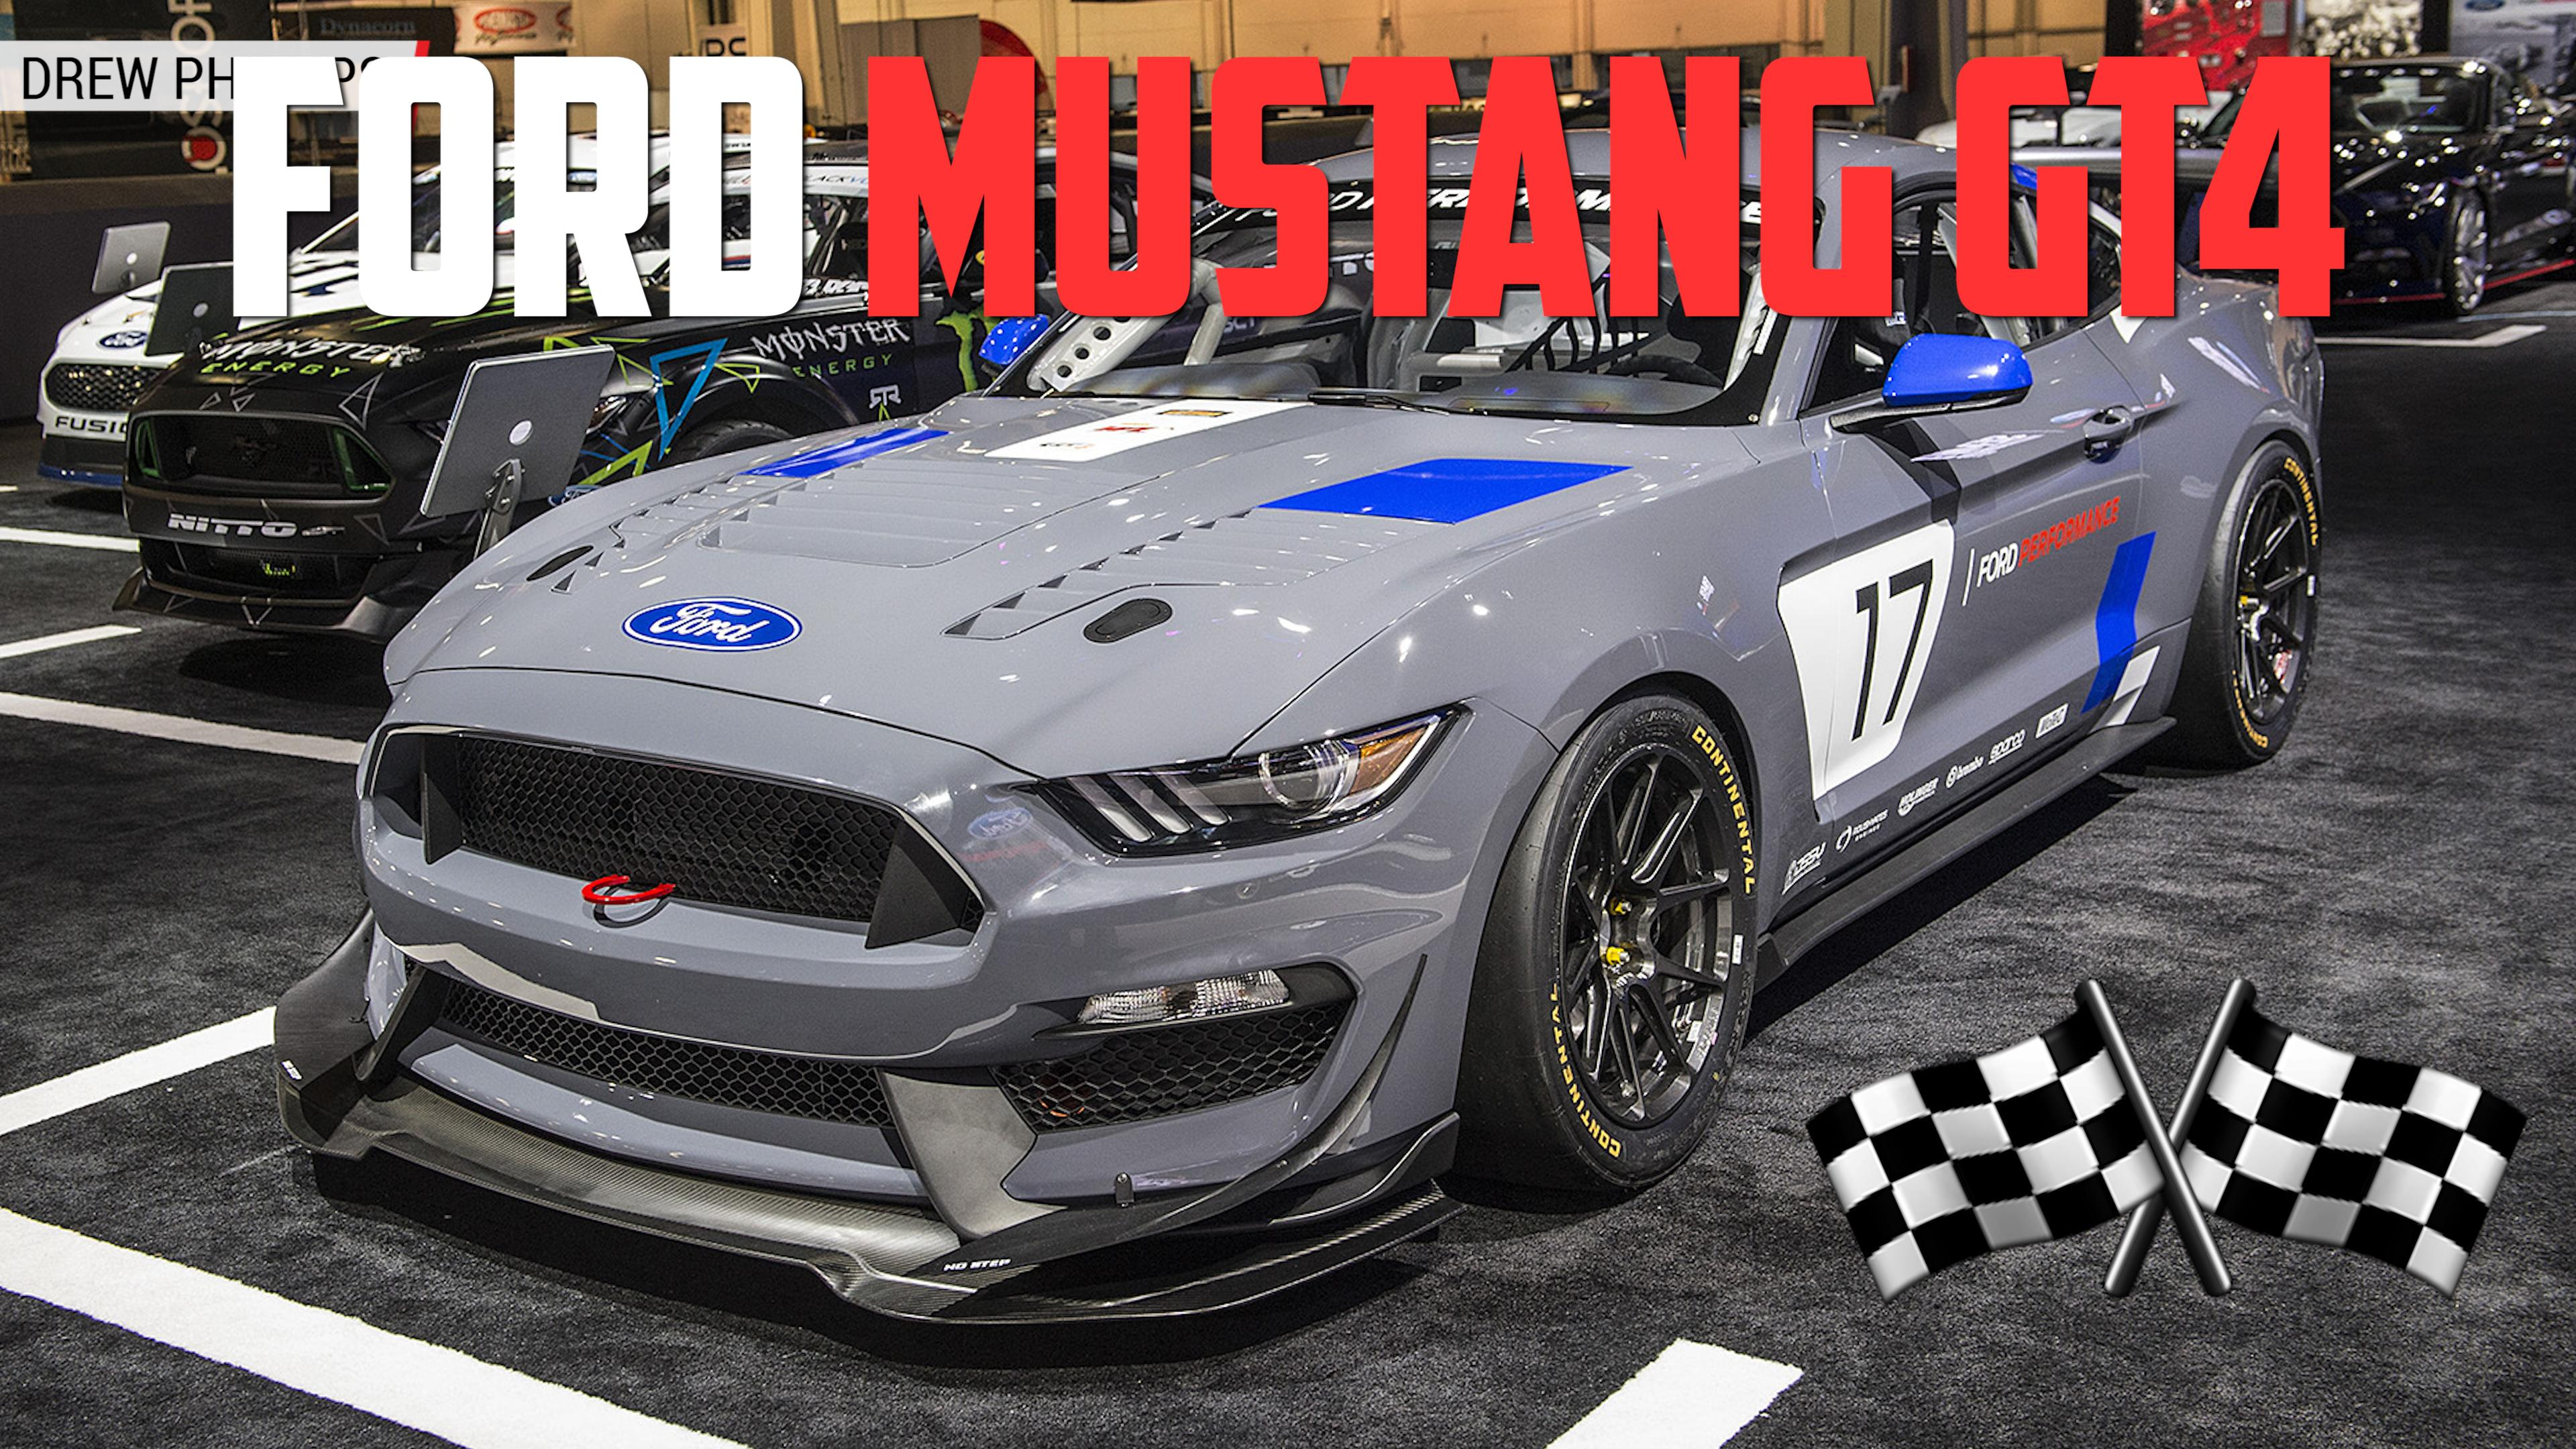 Ford Performance Shelby Fp350s Is The Latest Track Ready